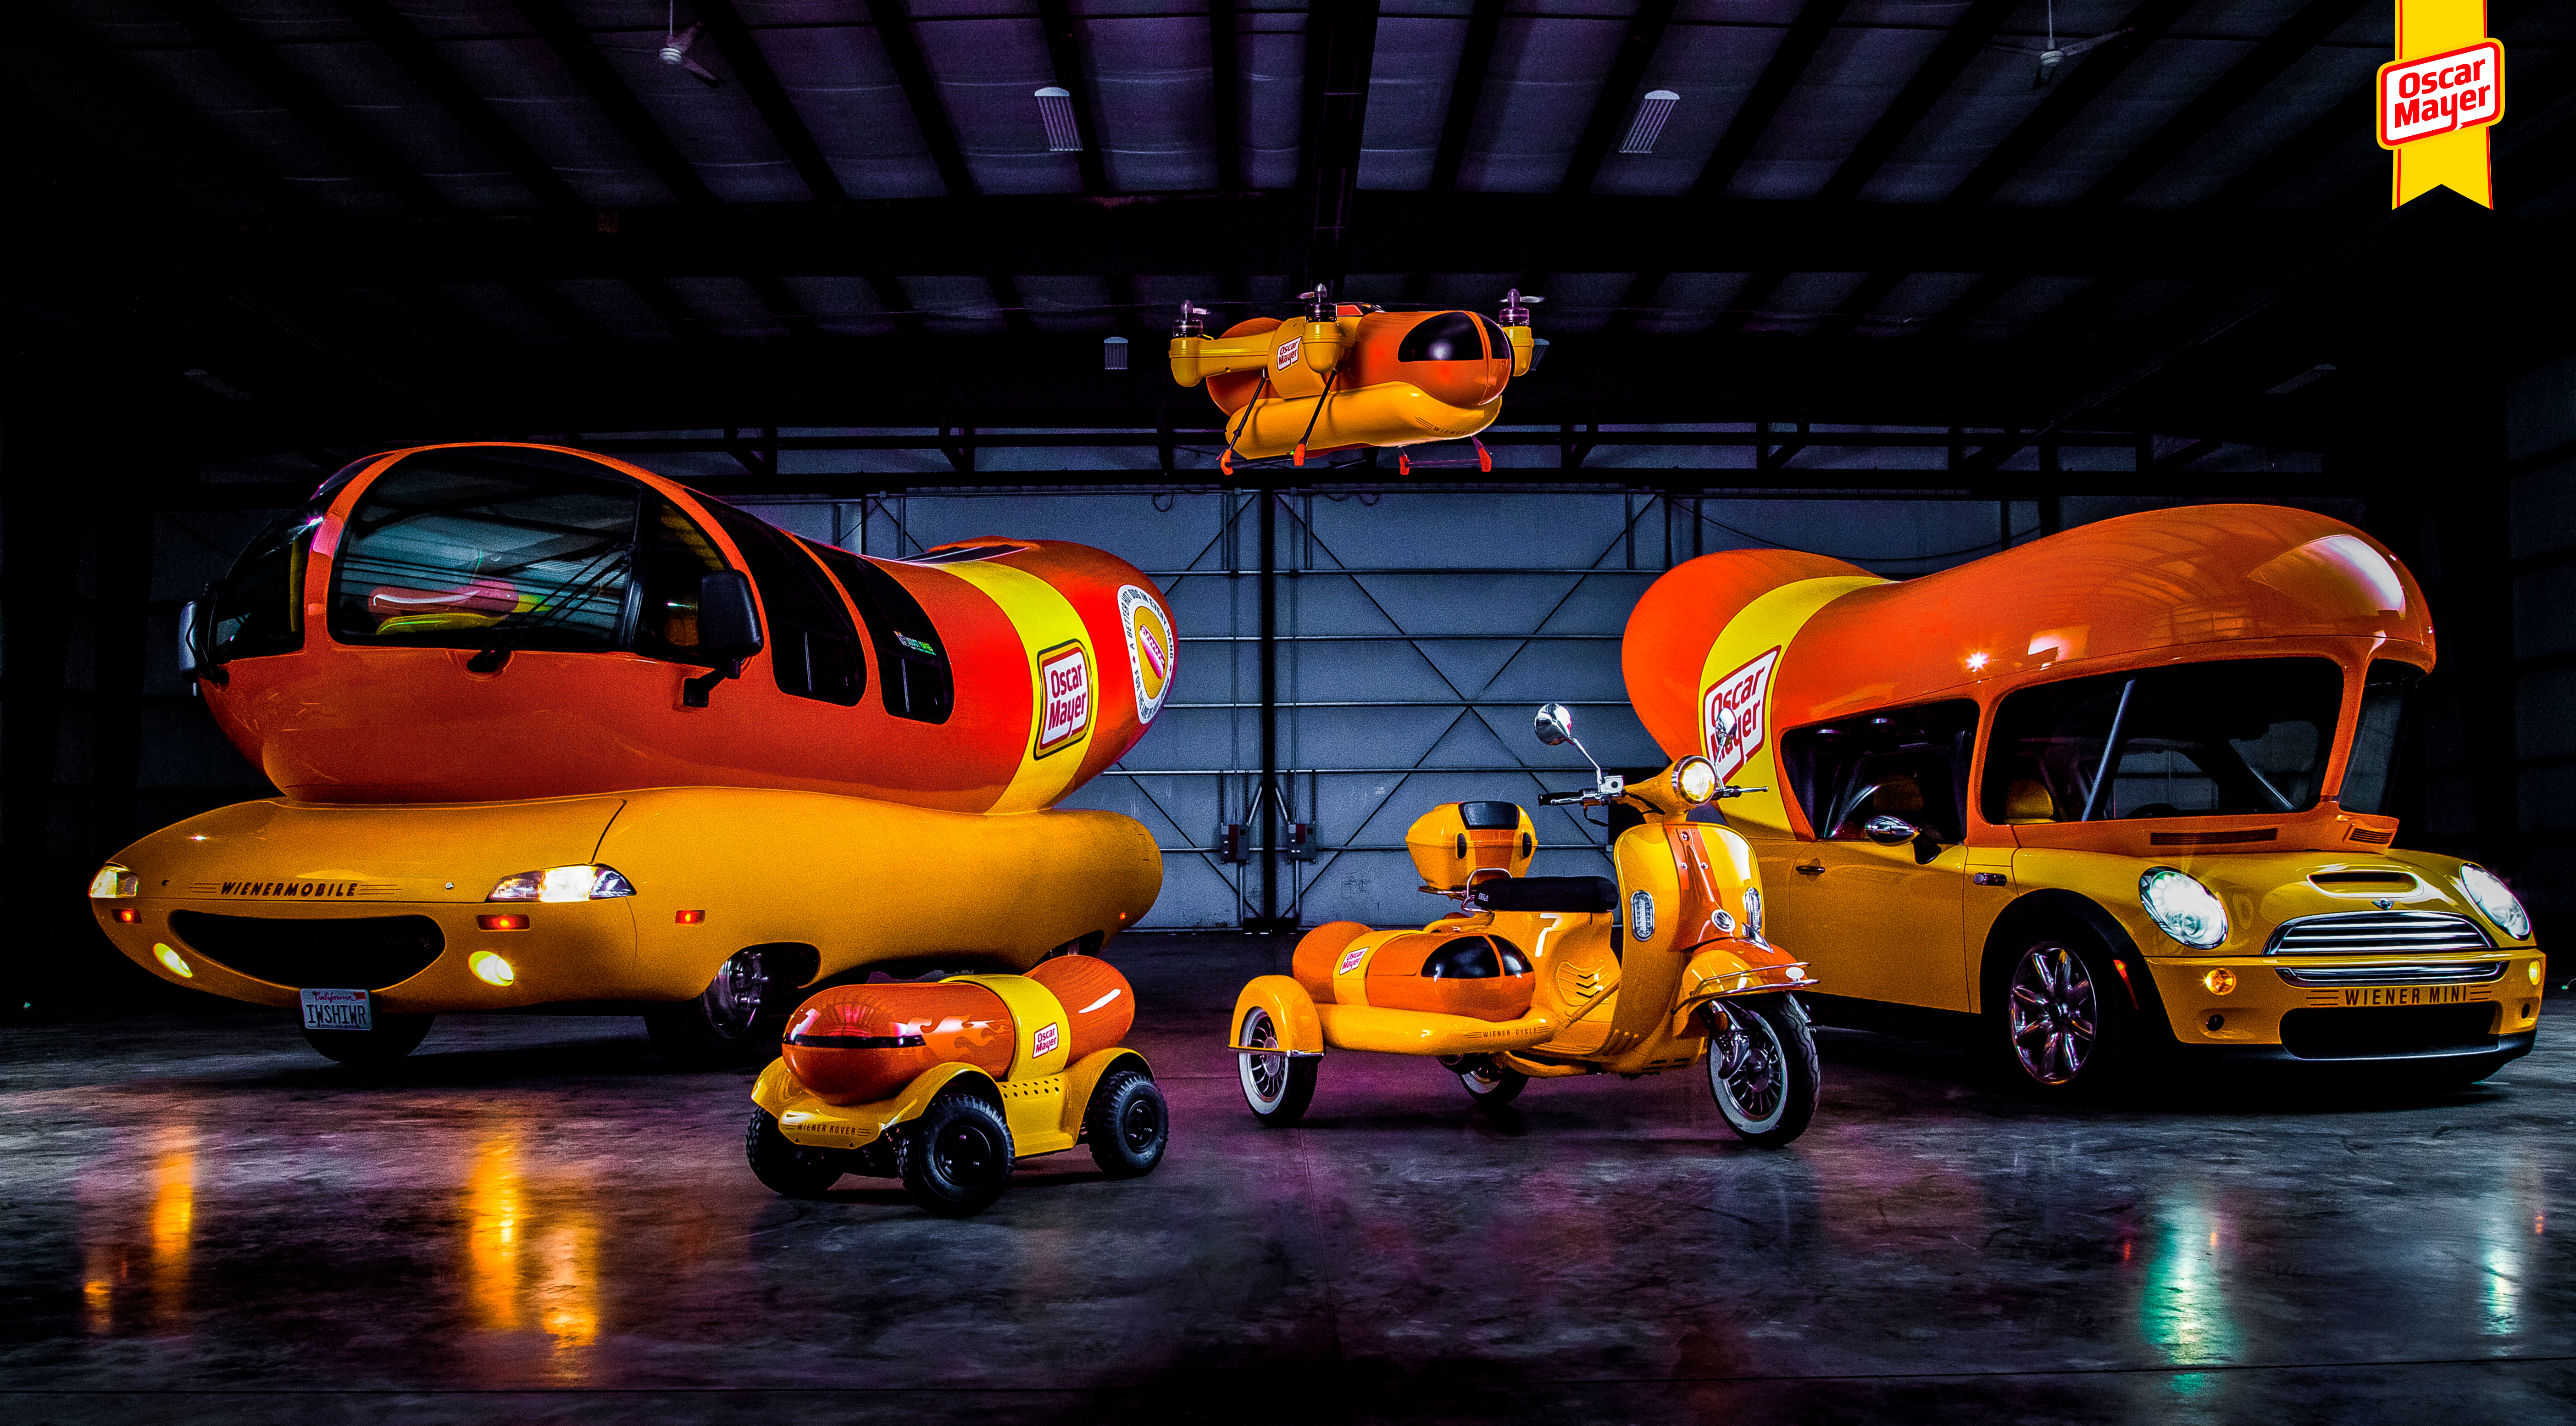 Oscar Mayer Reveals New Fleet Of Wienermobiles likewise Oscar Meyer Unveils New Fleet Of Weinermobiles 4 moreover 2V0XW moreover This Sausage Drone Will Drop A Hot Dog On Your Head in addition Oscar Mayer Wienermobile. on oscar mayer wienerdrone wienercycle